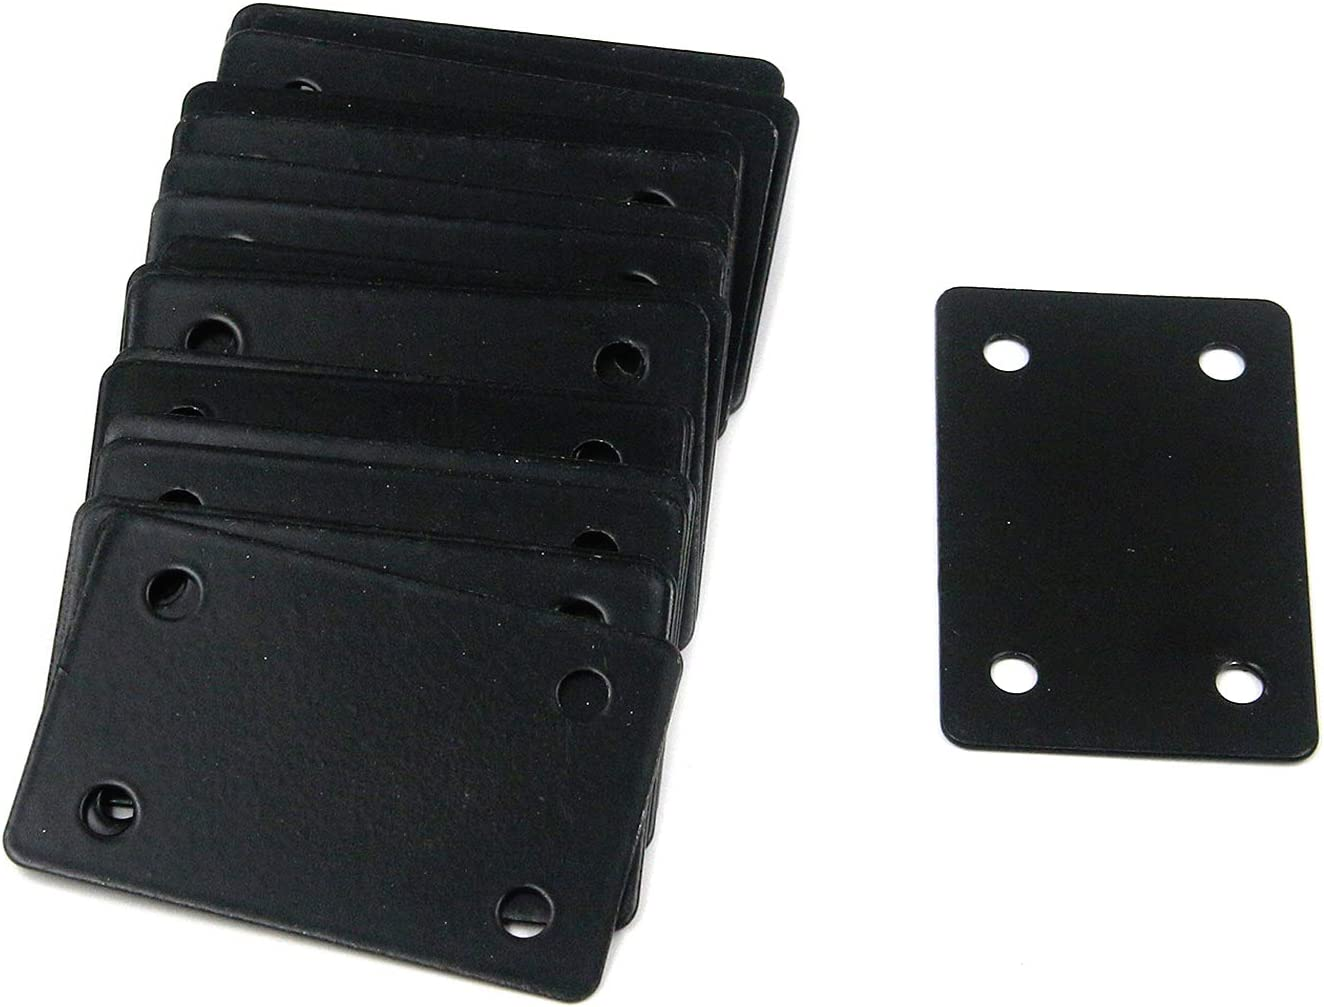 Mending Fort Worth Mall Plate Mcredy Flat Factory outlet Straight Brace 60x38mm Brackets 2.36x1